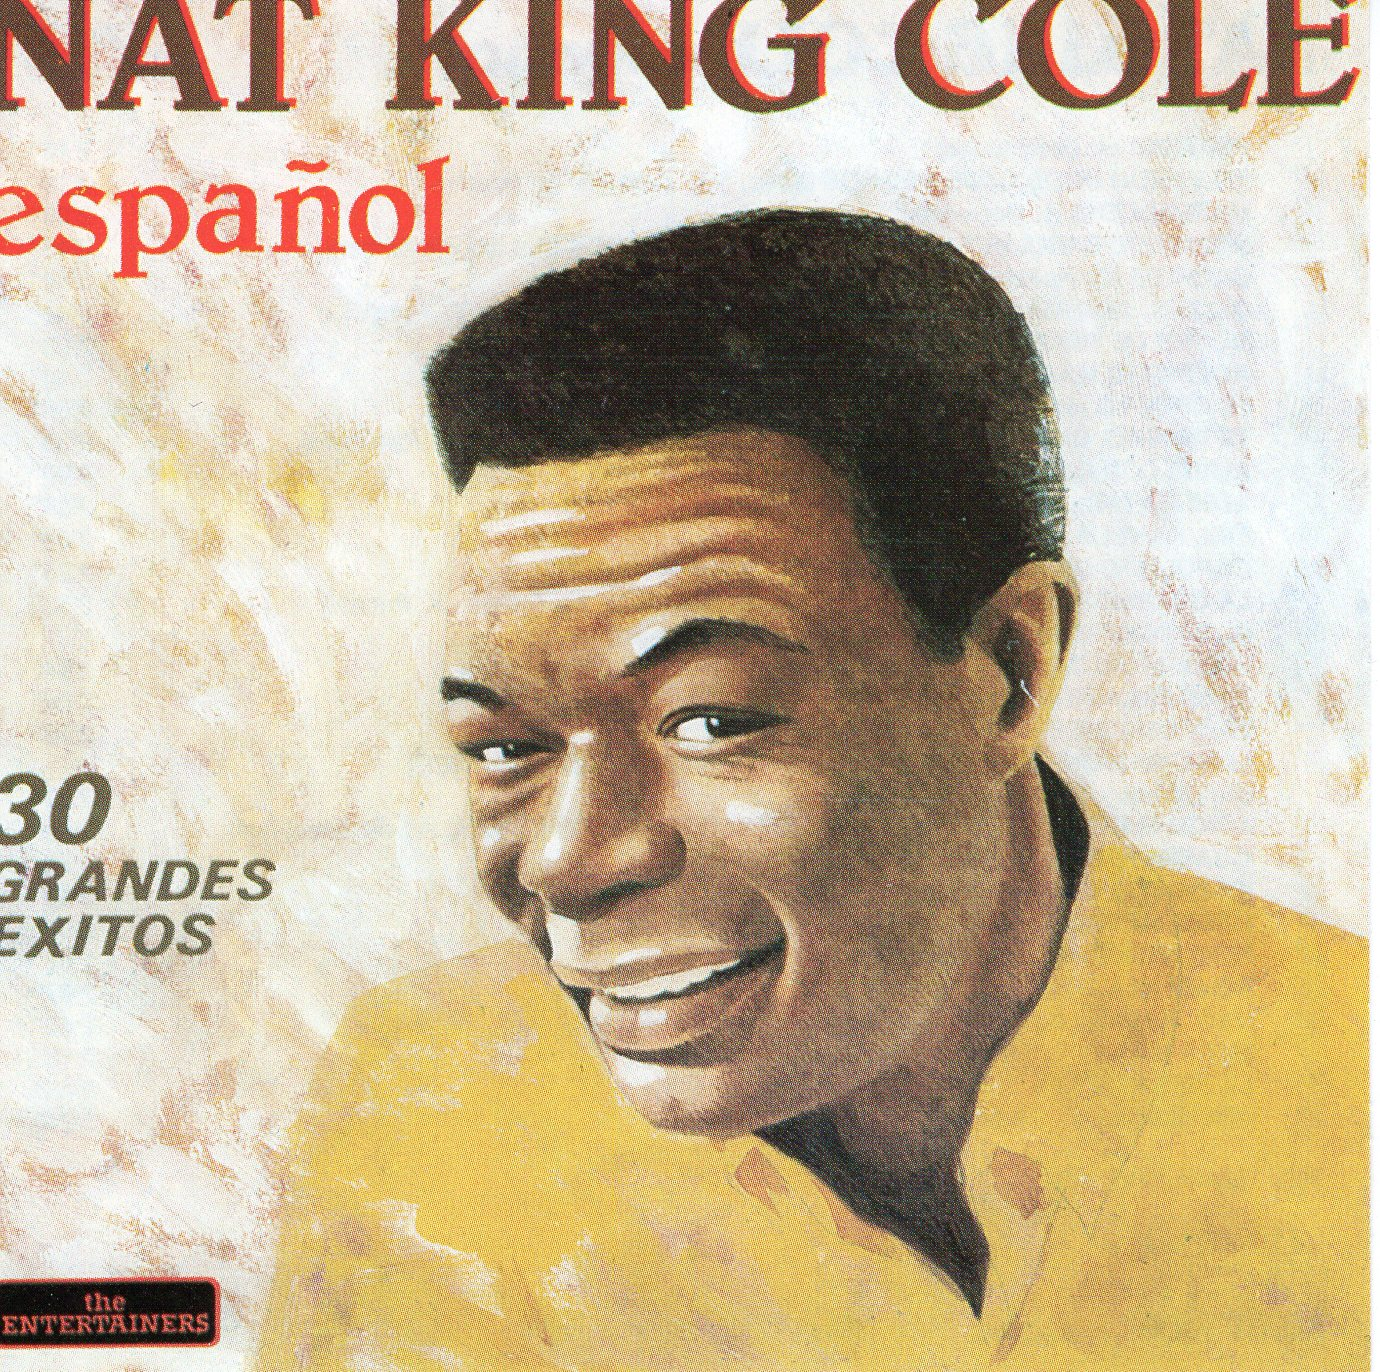 """Nat King Cole: Espanol 30 Grandes Exitos"" Nat King Cole"